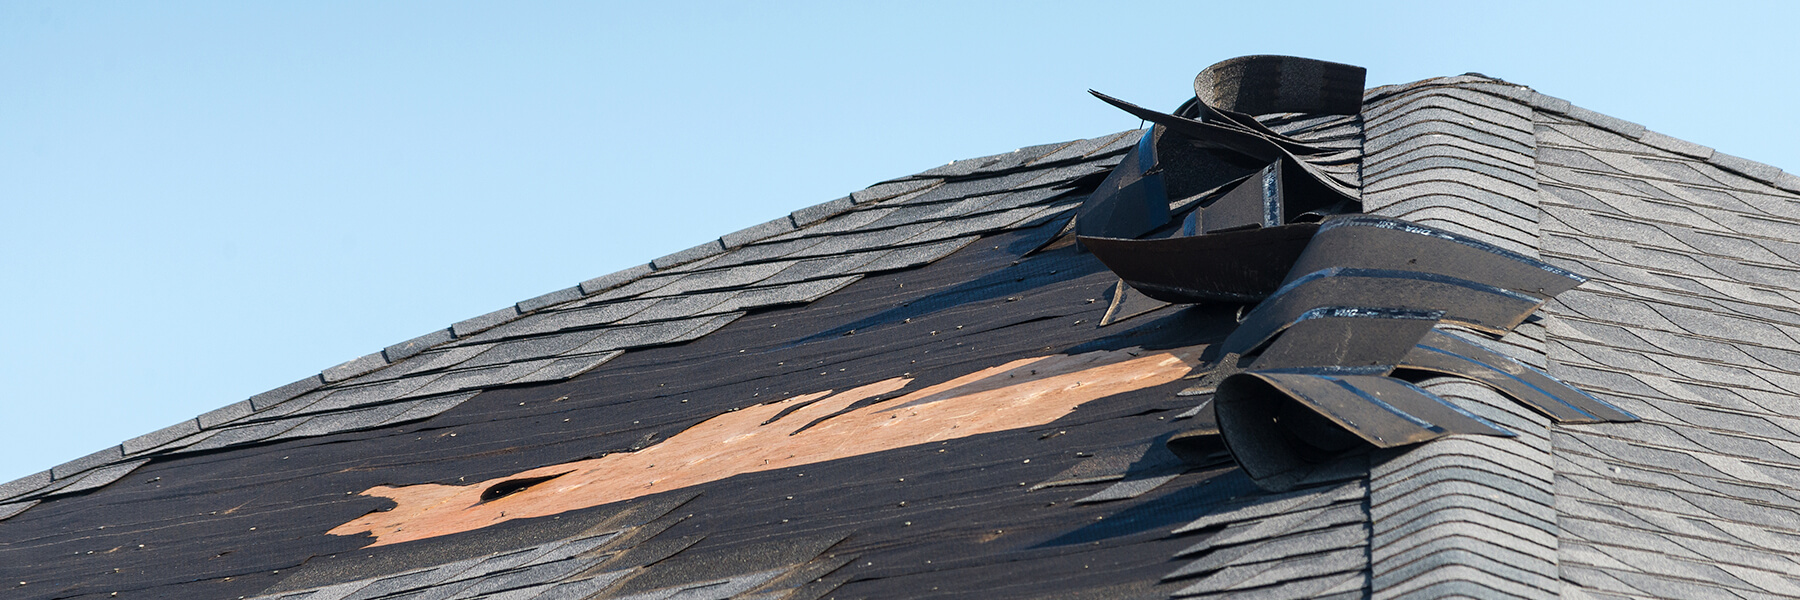 What To Know About Roofing Warranties